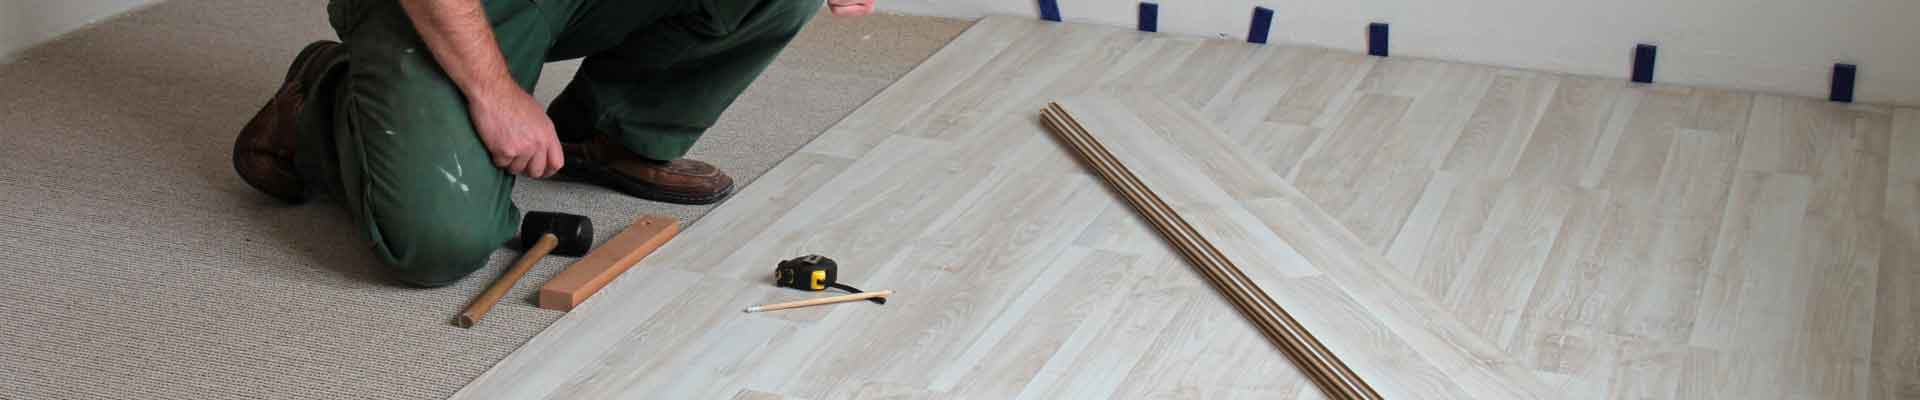 estil possible de poser du parquet sur de la moquette